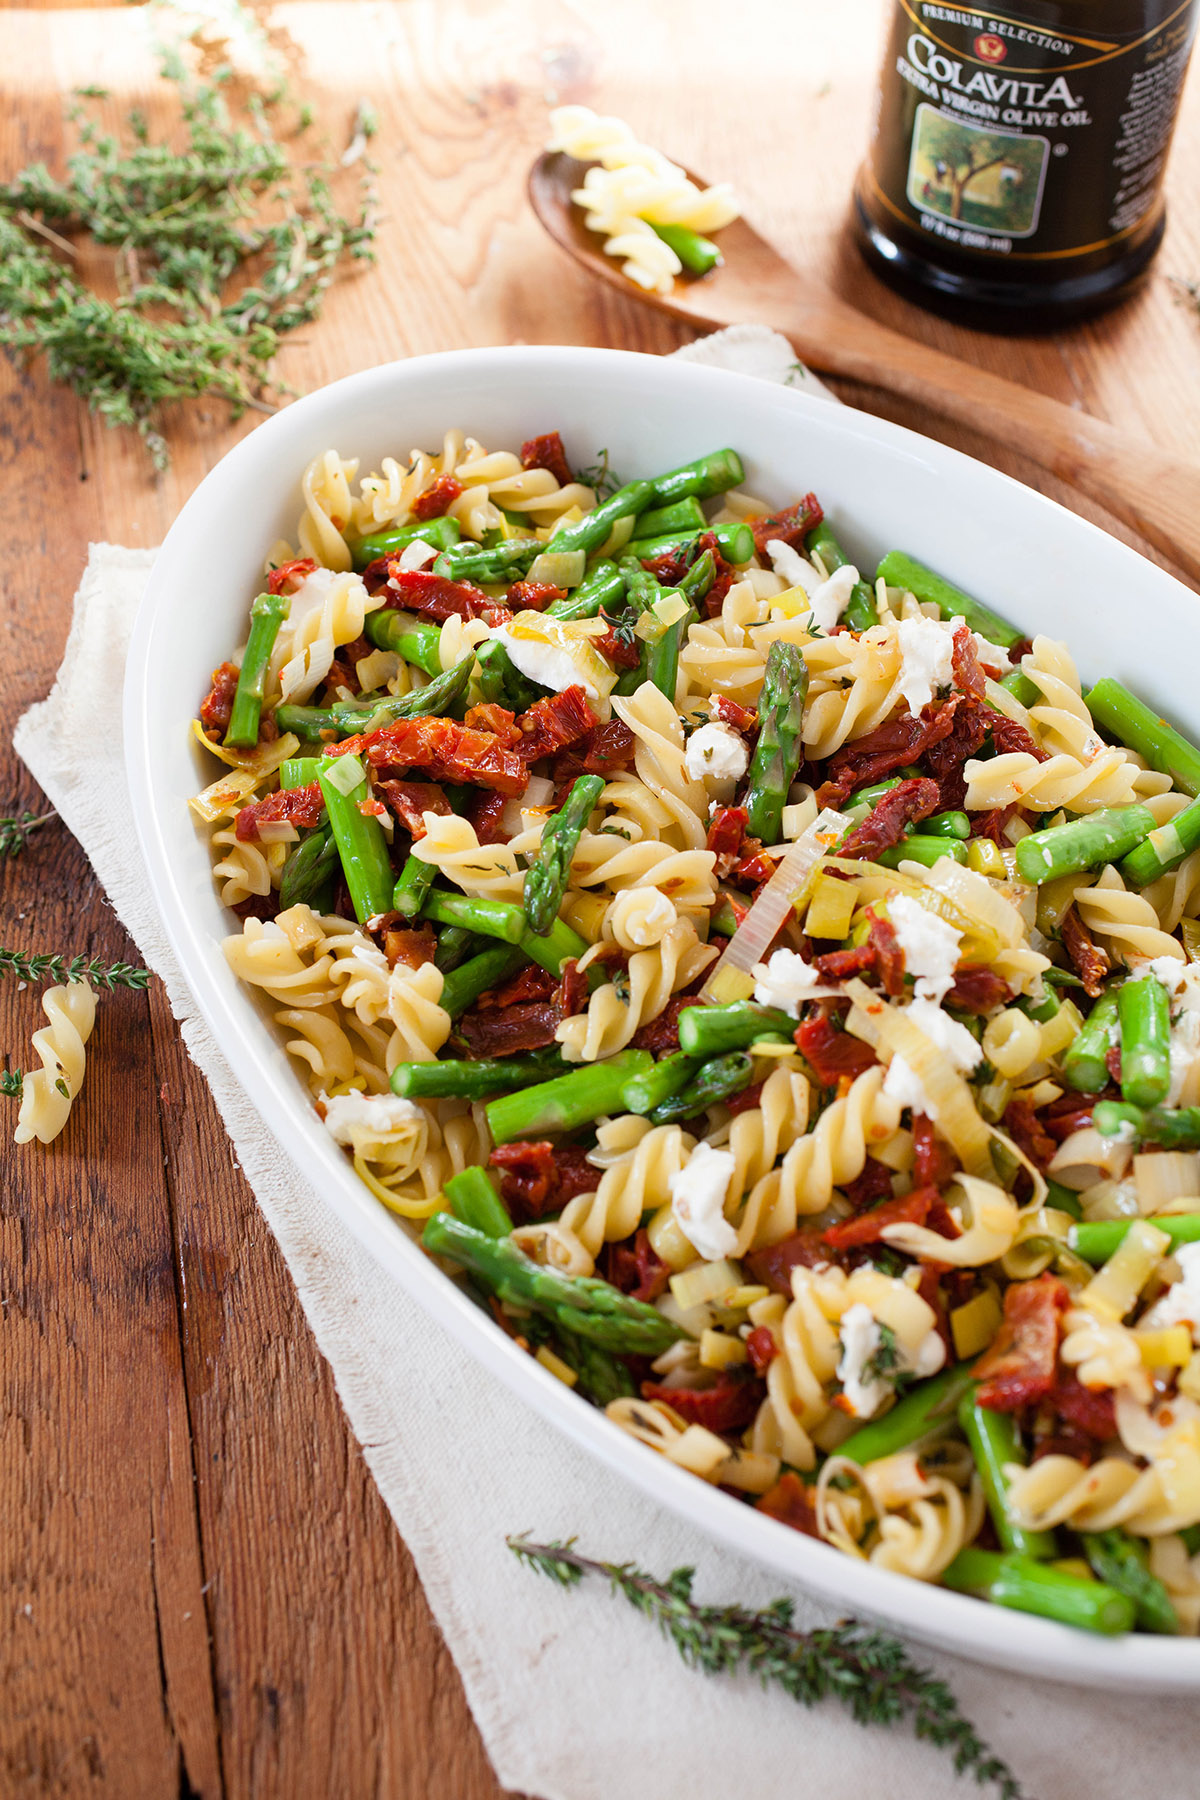 Pasta with Asparagus and Sun-Dried Tomatoes